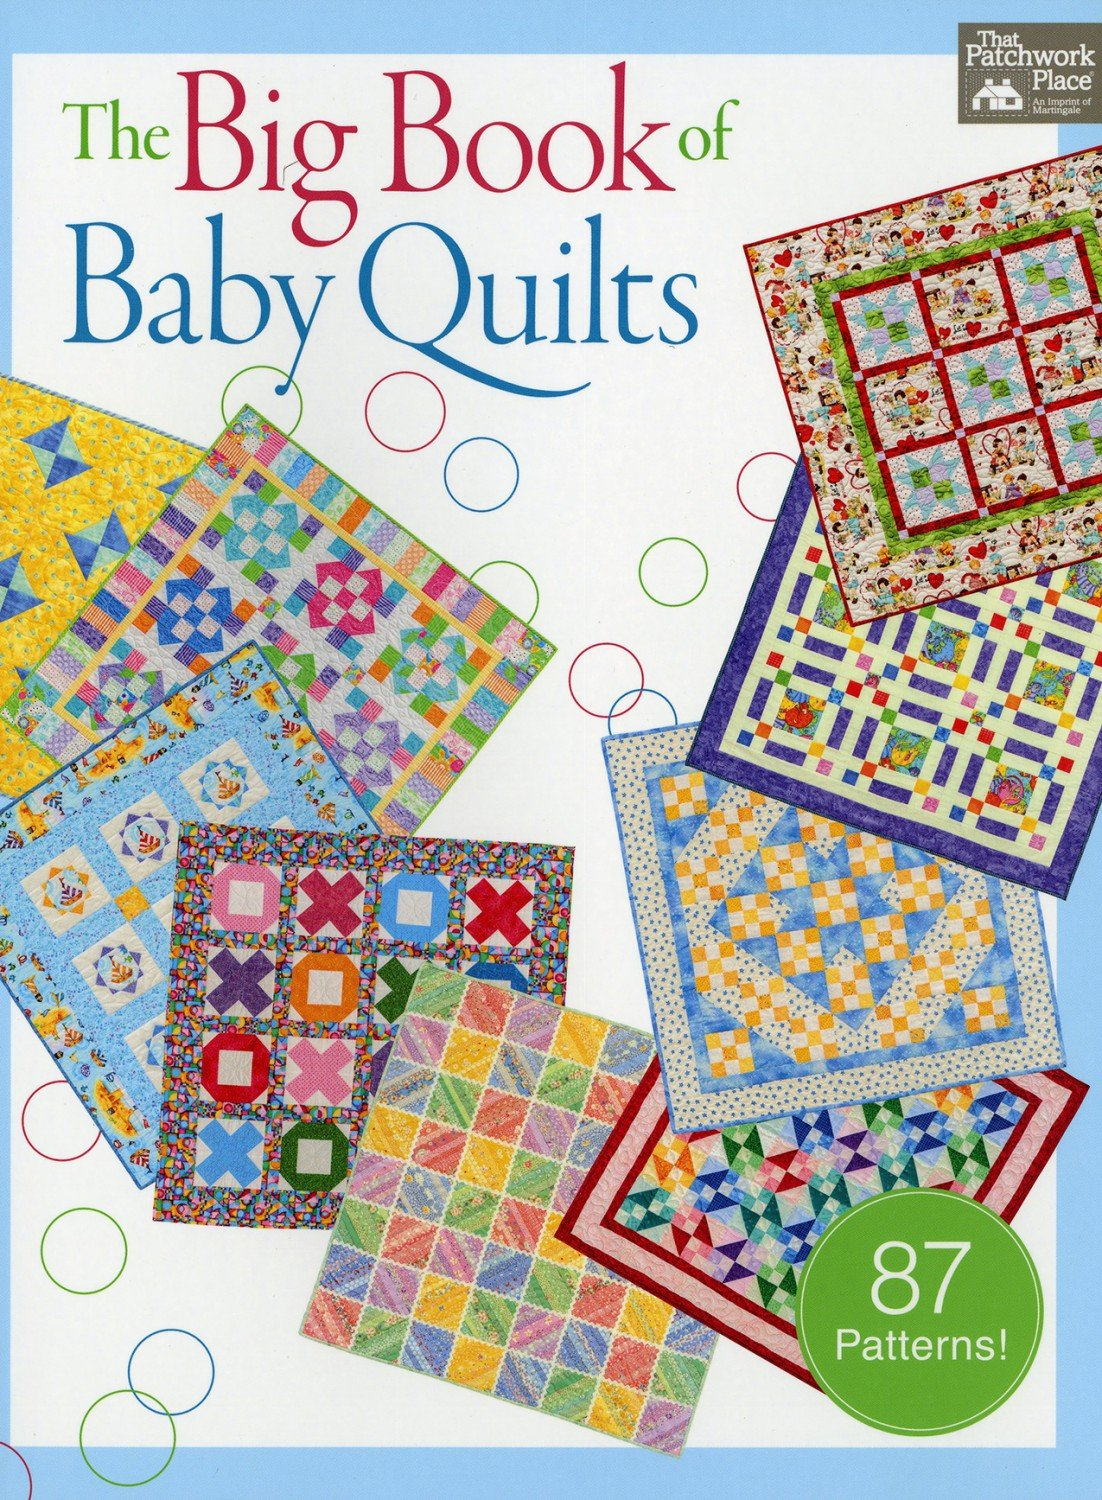 Big Book Of Baby Quilts by That Patchwork Place